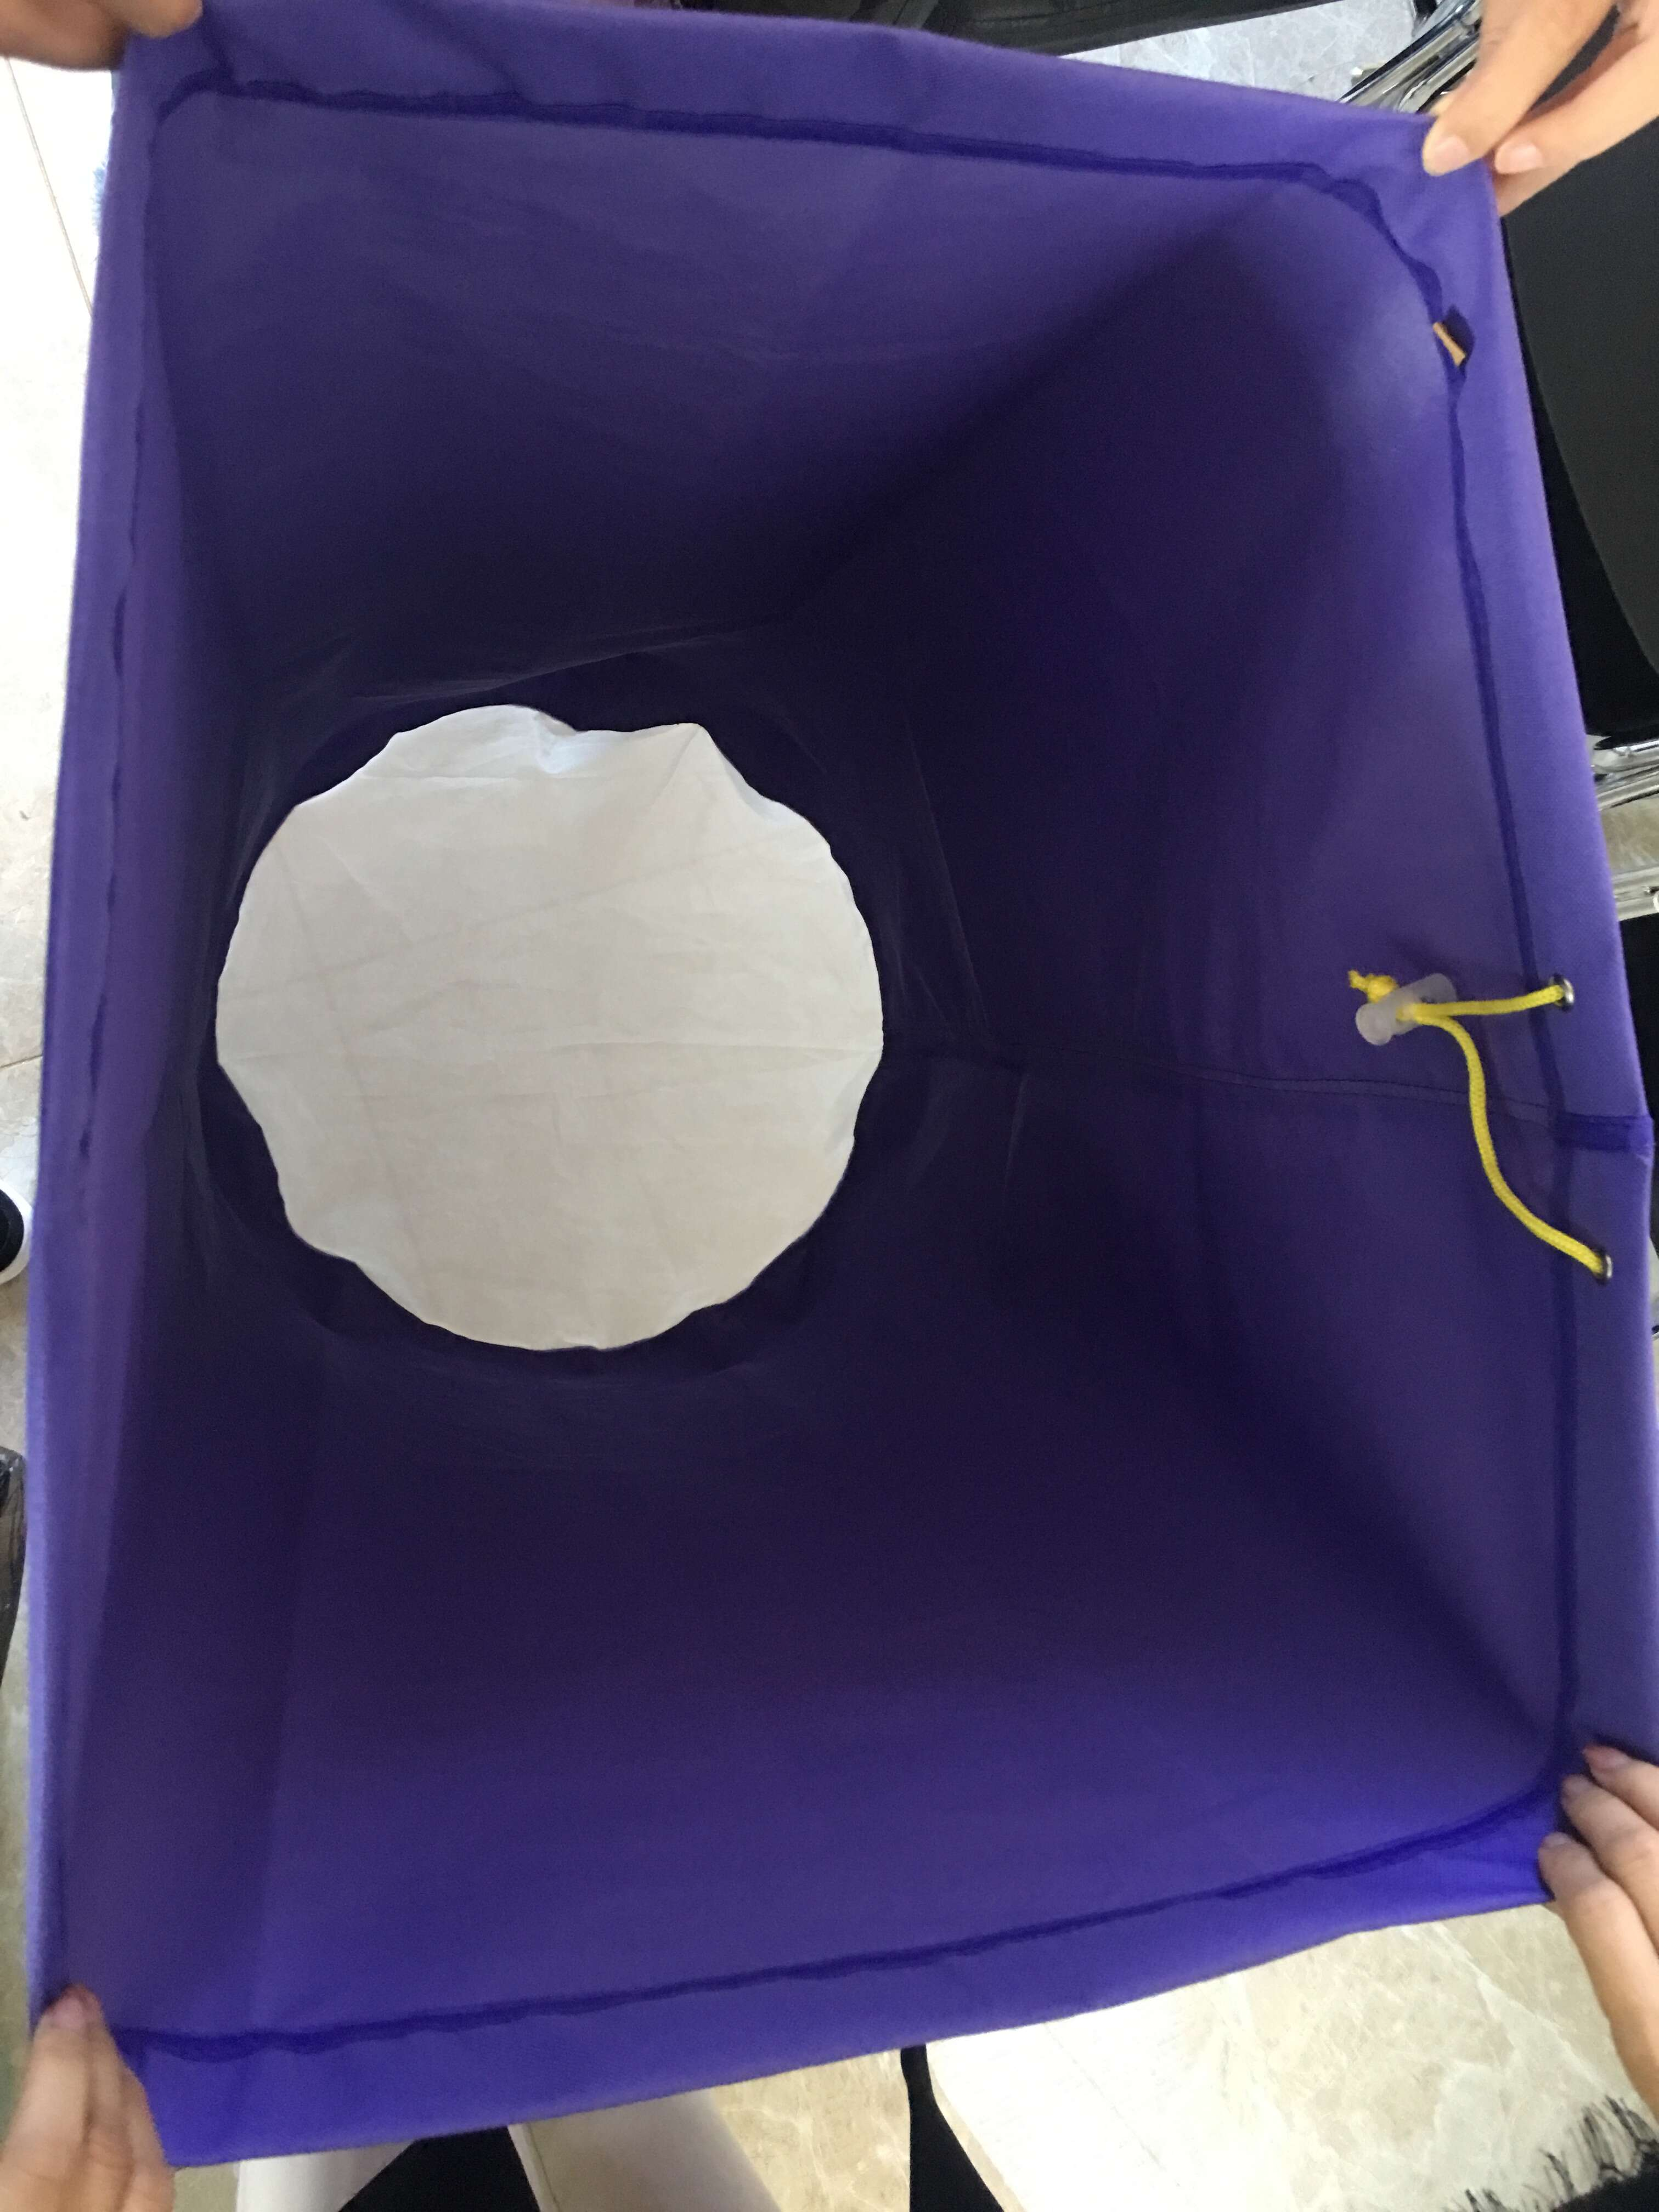 5 Gallon 8 Bags herb extraction hash extraction bubble bags